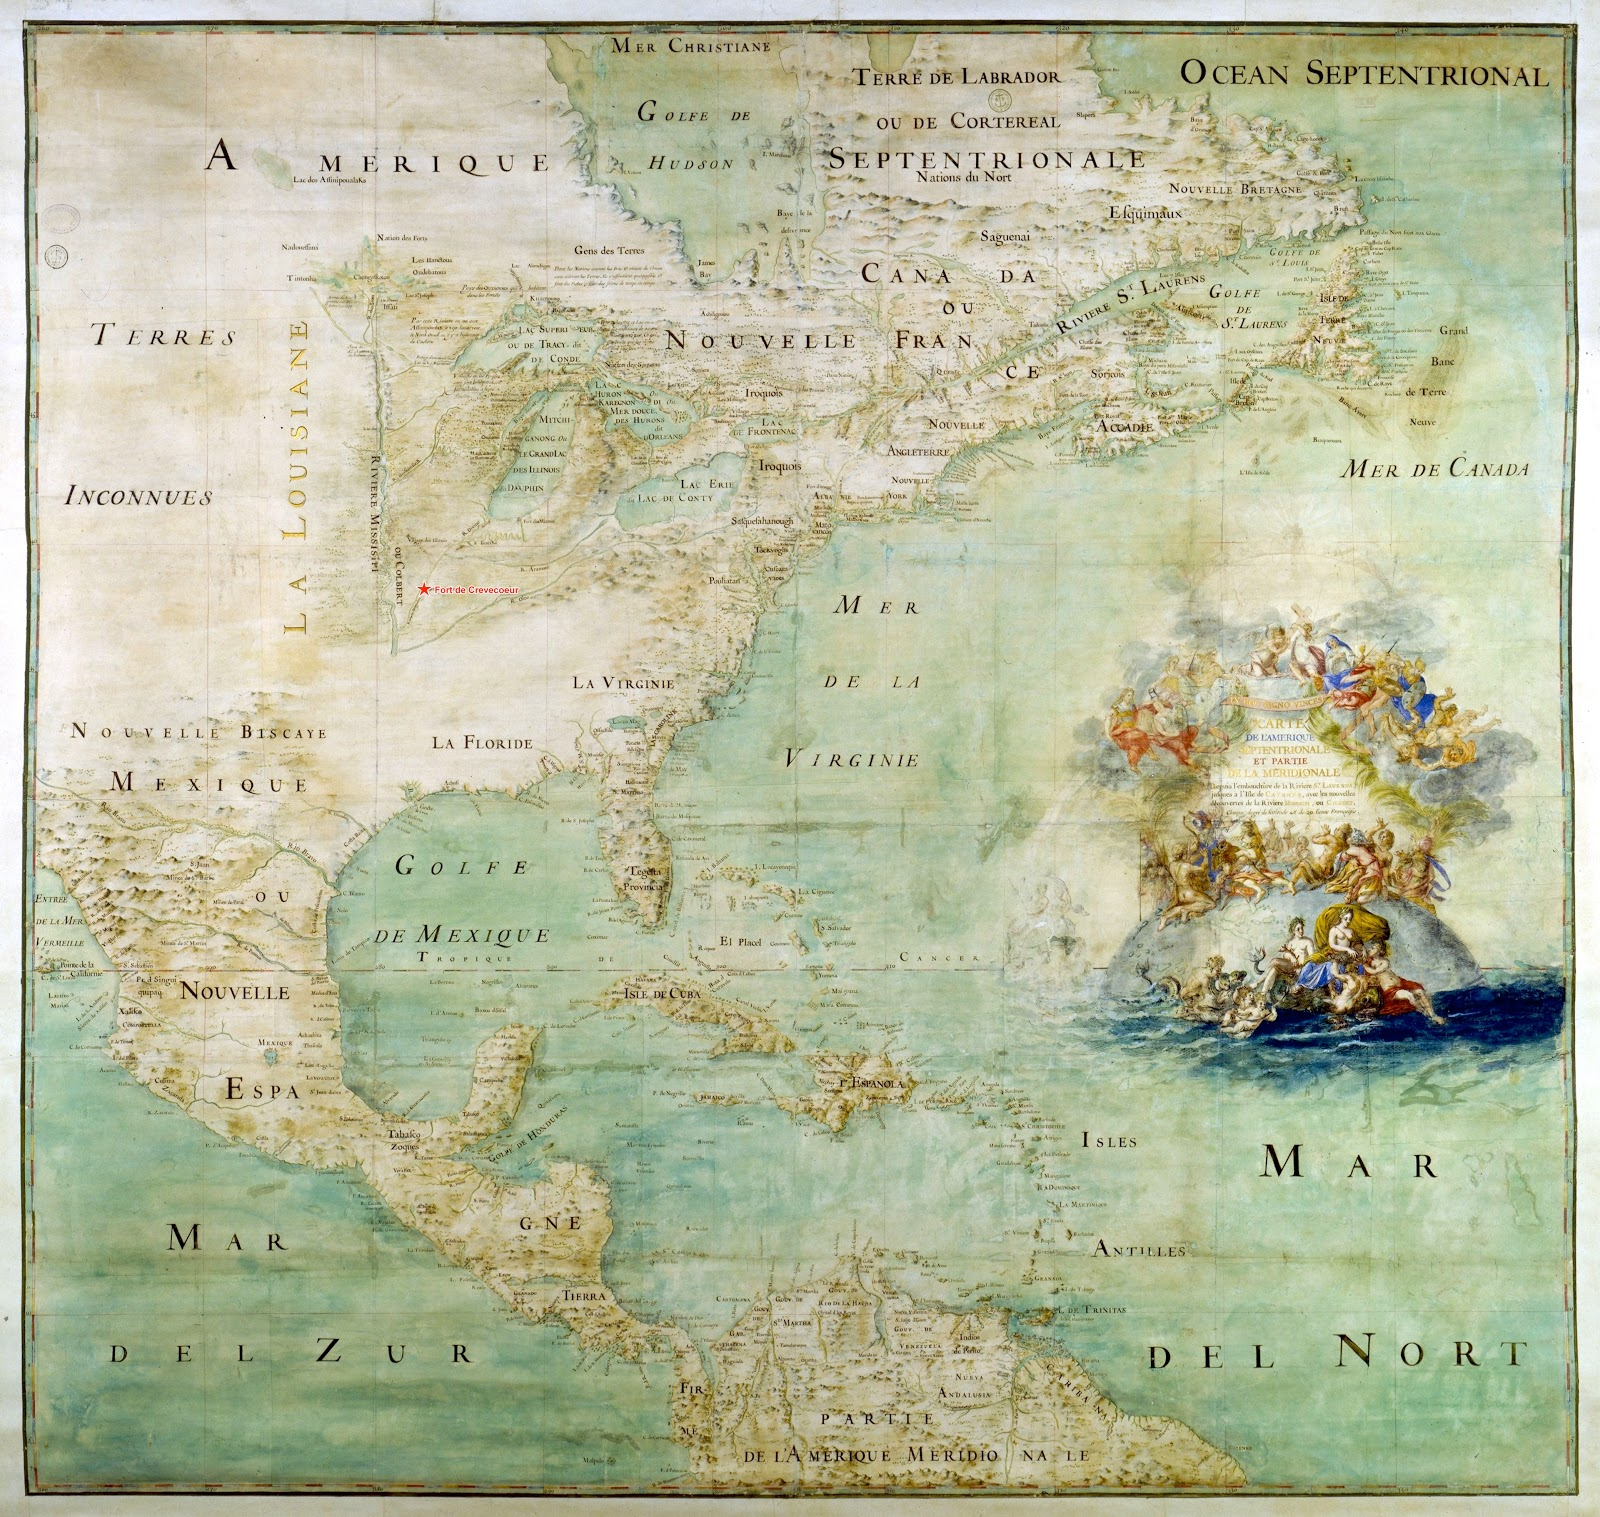 antique french map of north america in 1681 by claude bernou showing fort de crevecoeur location click for a jumbo sized map